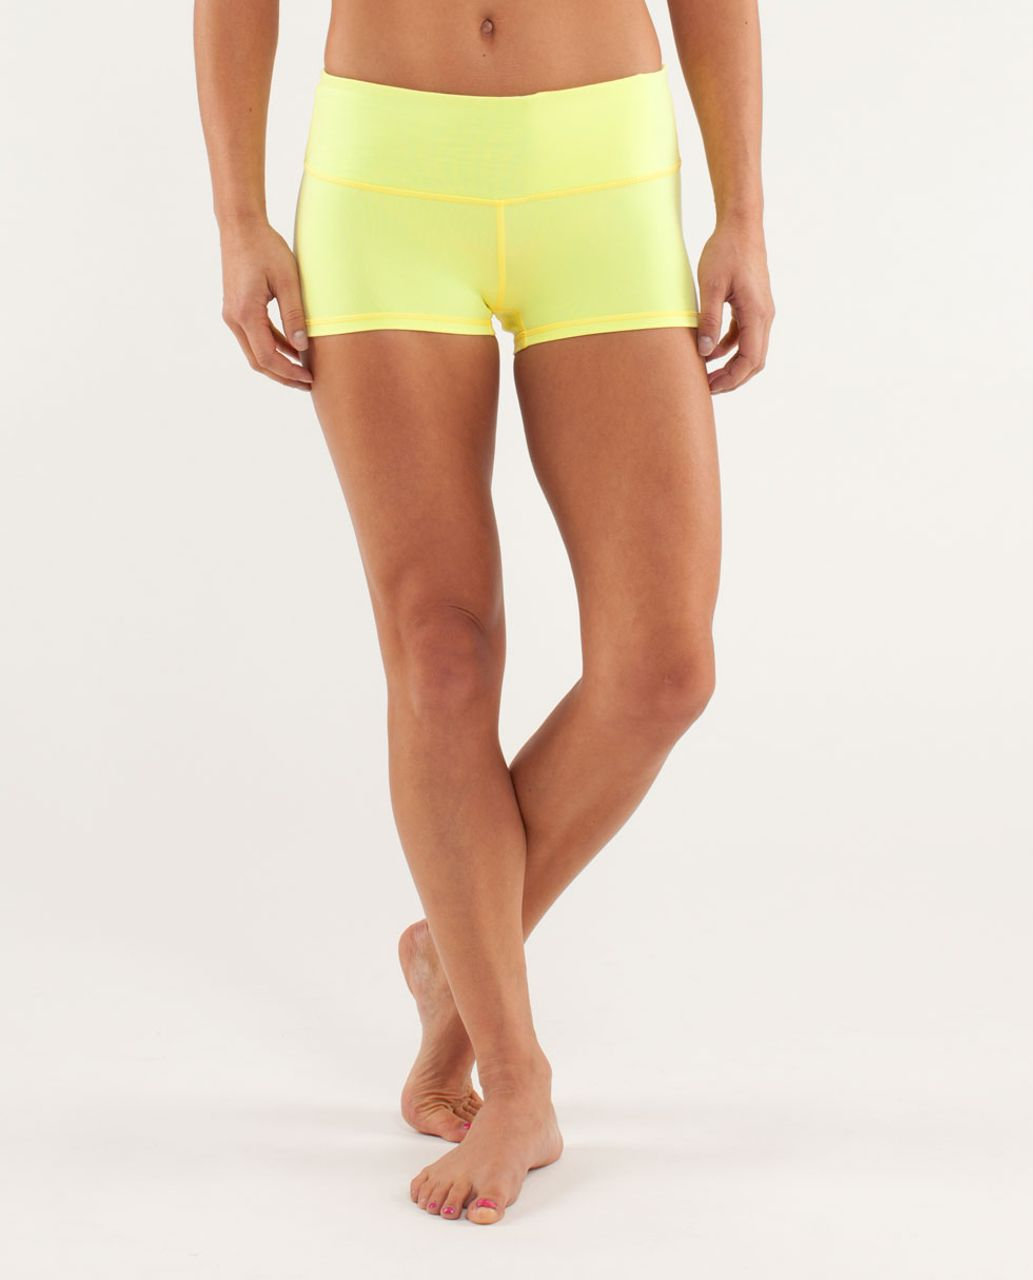 Lululemon Boogie Short - Clarity Yellow / Wee Are From Space Polar Cream Clarity Yellow